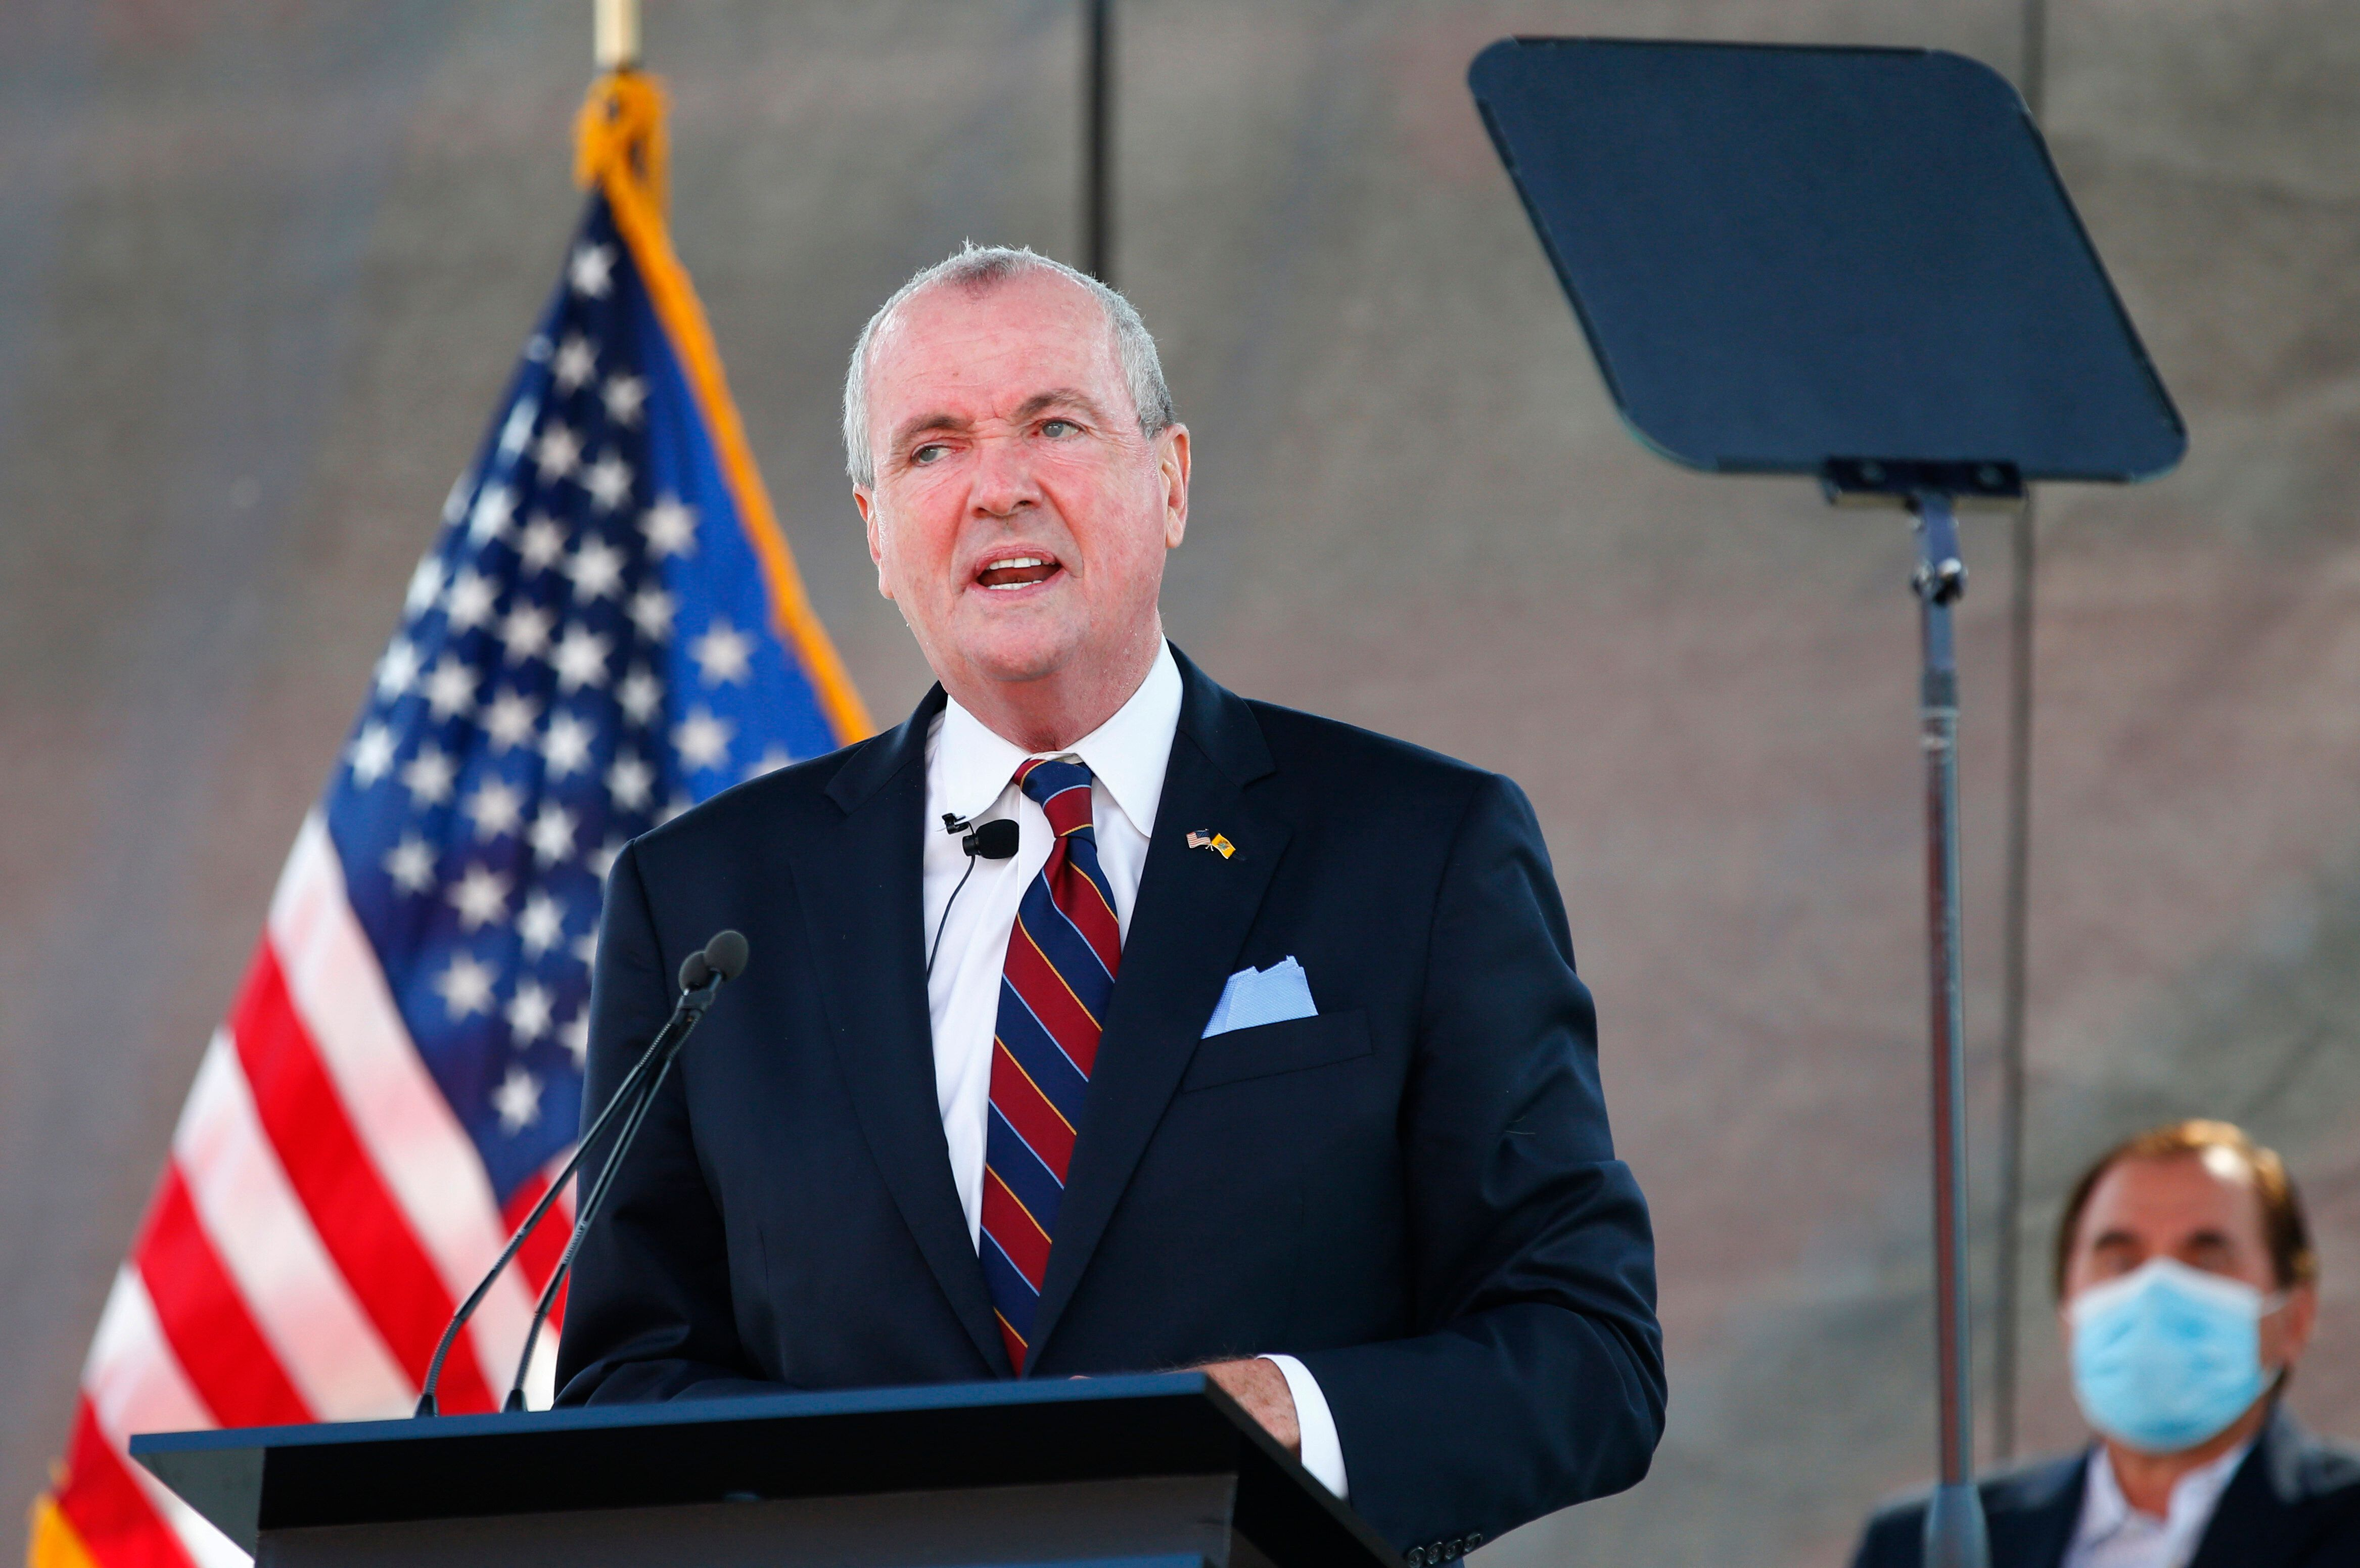 Gov. Phil Murphy signed the bill into law on Thursday following a conversation about race and social justice with singer and